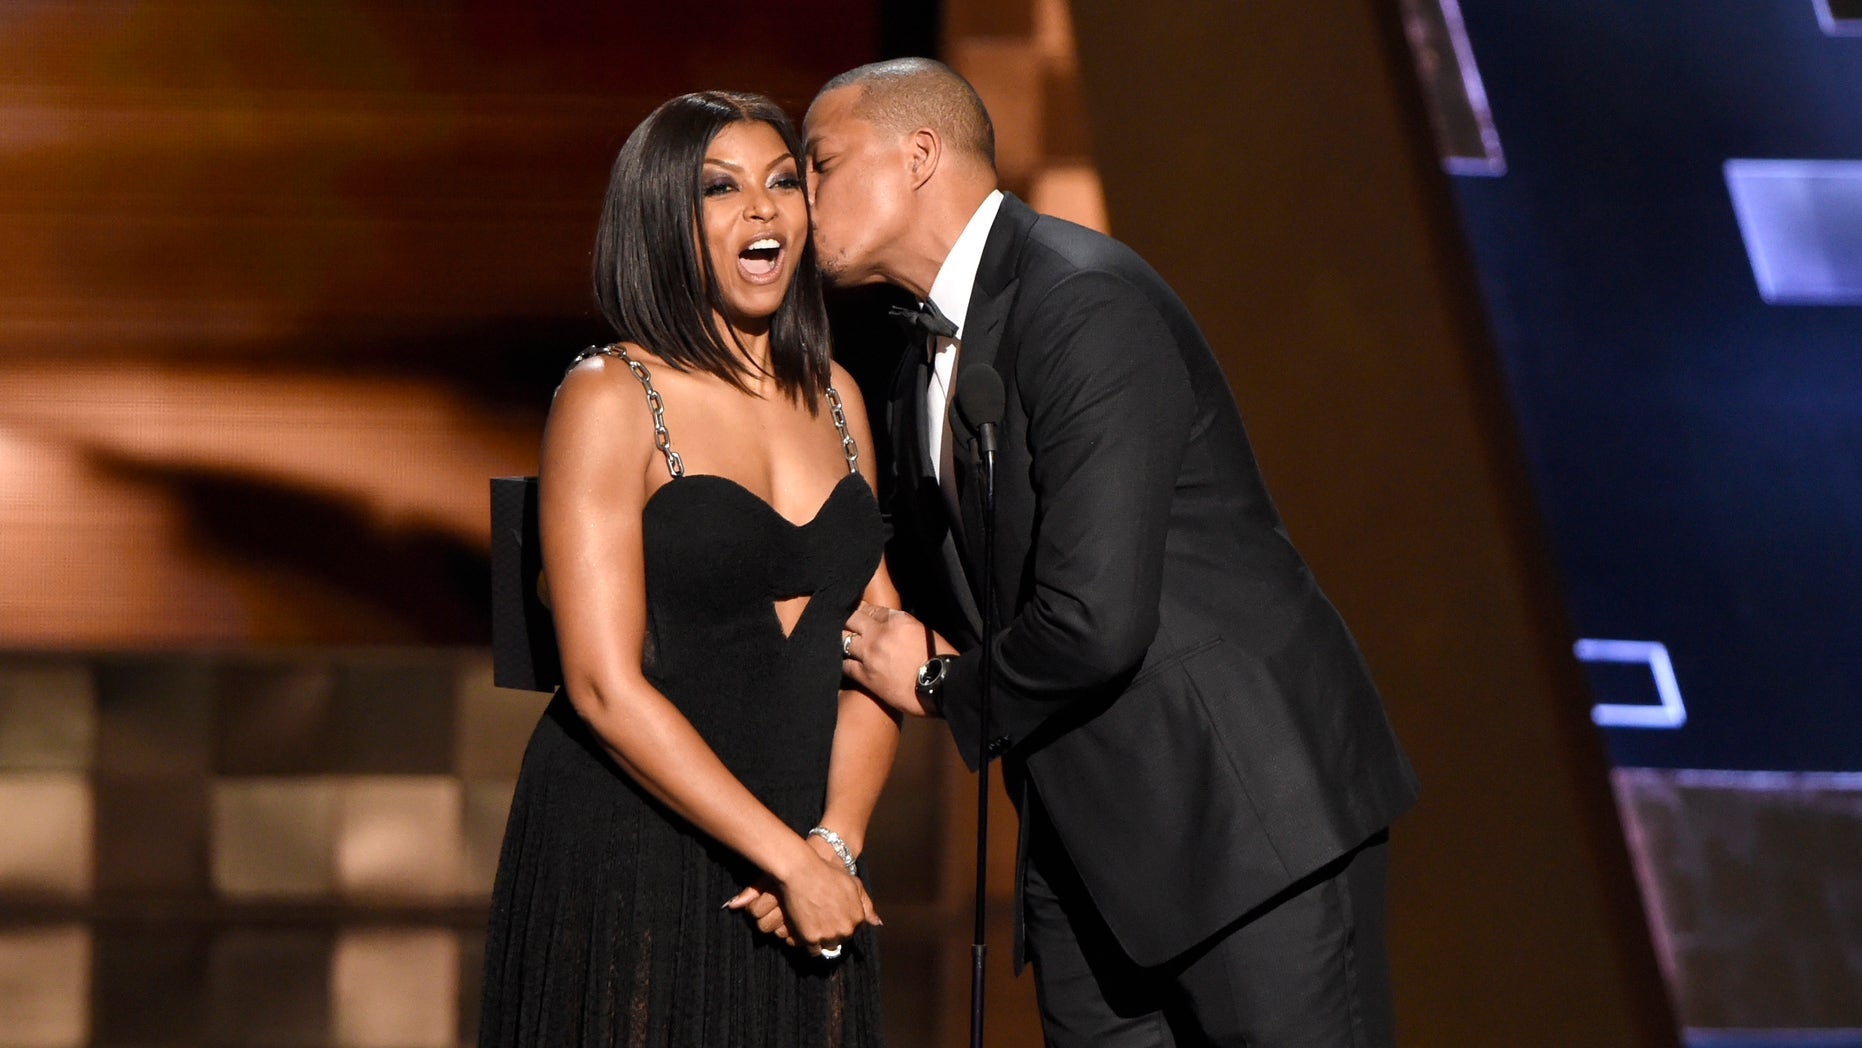 Taraji P. Henson, left, receives a kiss from Terrence Howard as they present the award for outstanding supporting actress in a limited series or a movie at the 67th Primetime Emmy Awards on Sunday, Sept. 20, 2015, at the Microsoft Theater in Los Angeles. (Photo by Chris Pizzello/Invision/AP)